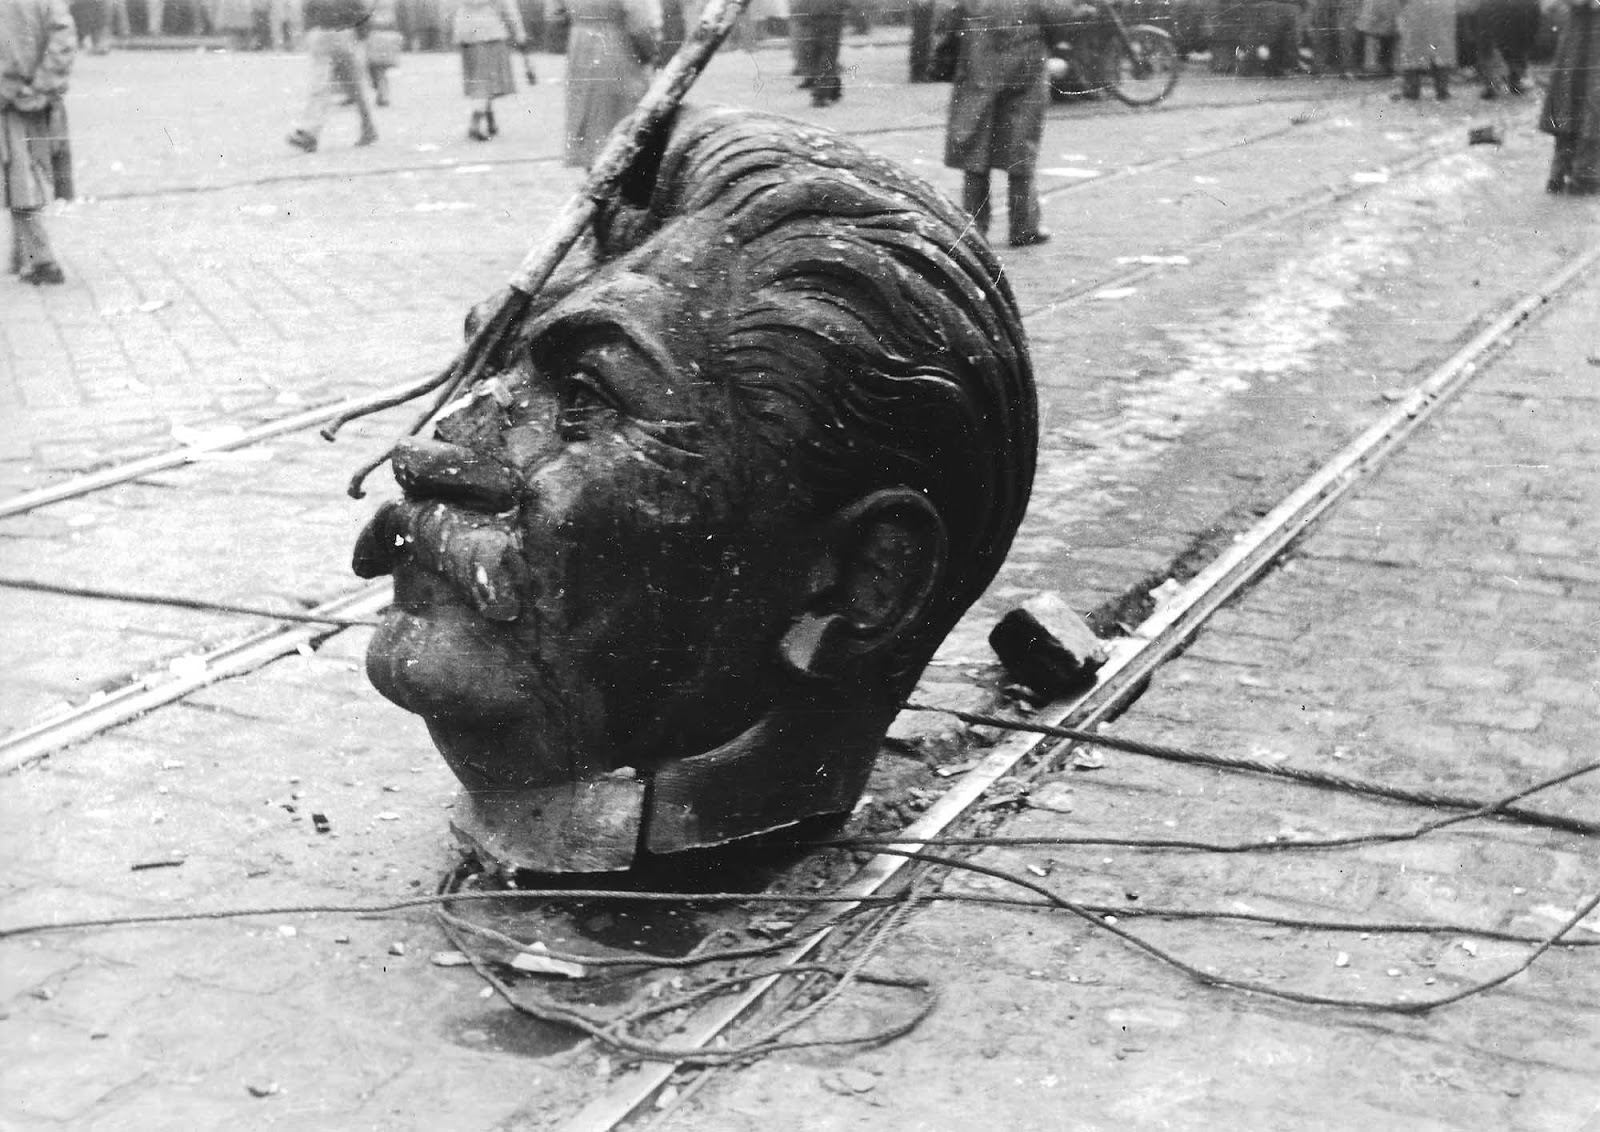 Stalin's monument was torn down on October 23, 1956, by enraged anti-Soviet crowds during Hungary's October Revolution.